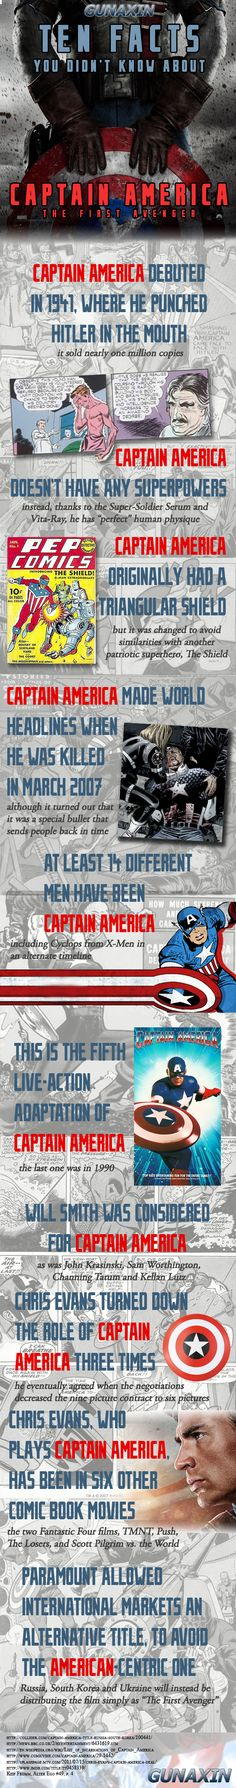 10 Facts You Didn't Know About Captain America